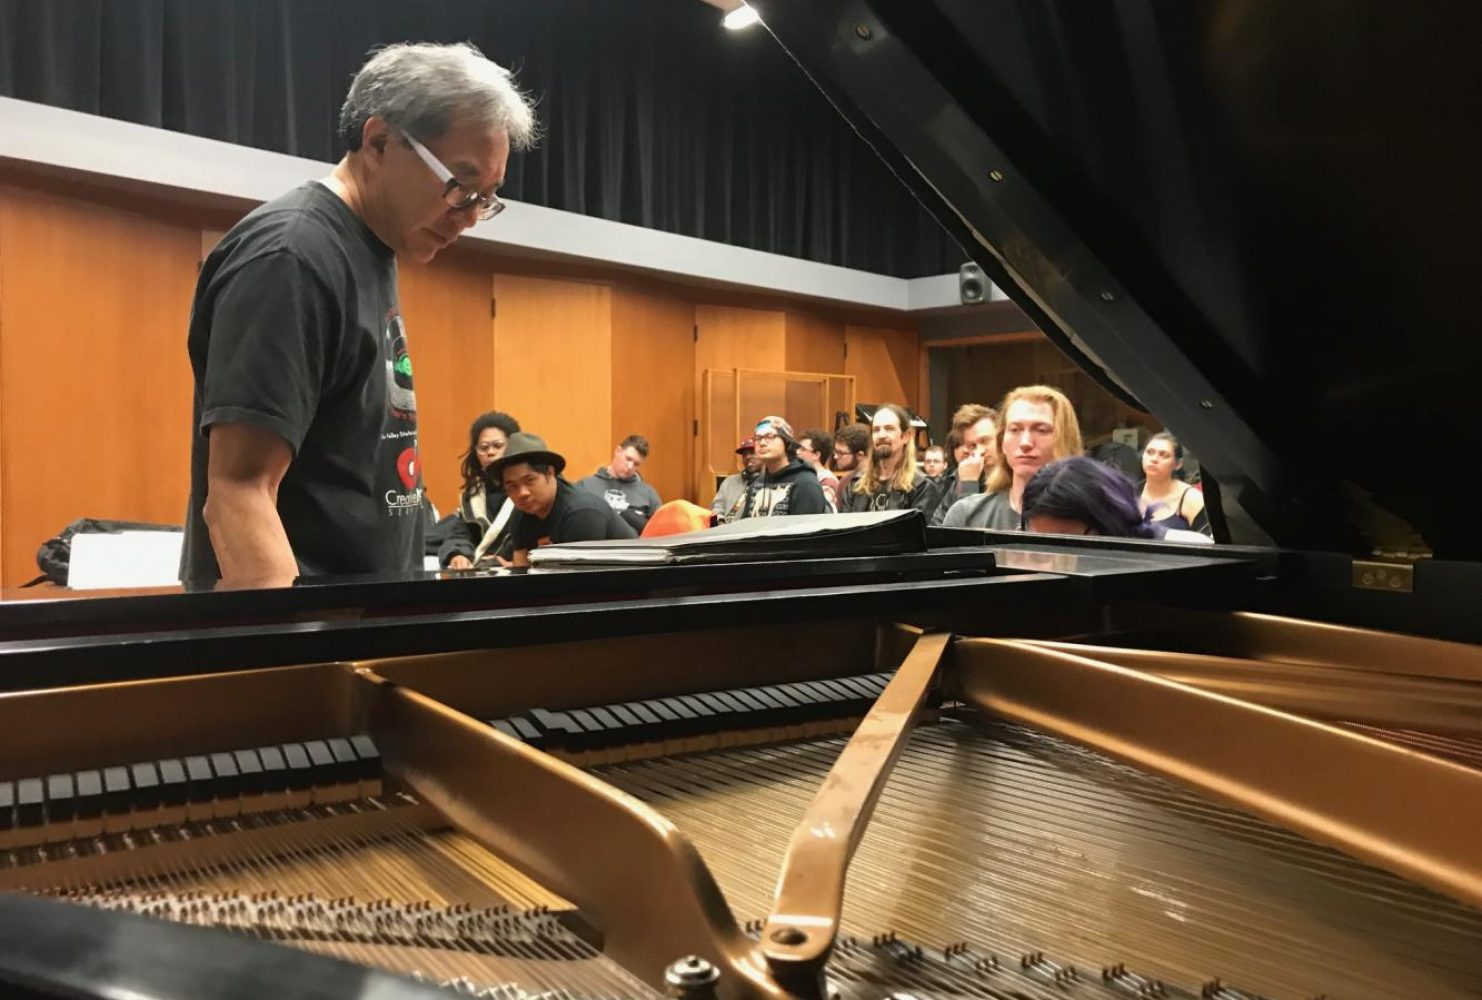 Chair of the music department Eric Chun teaches on how to write chord progressions during his songwriting class, MUSM 120 on Feb. 25, 2019 at ARC. (Photo by Ariel Caspar)